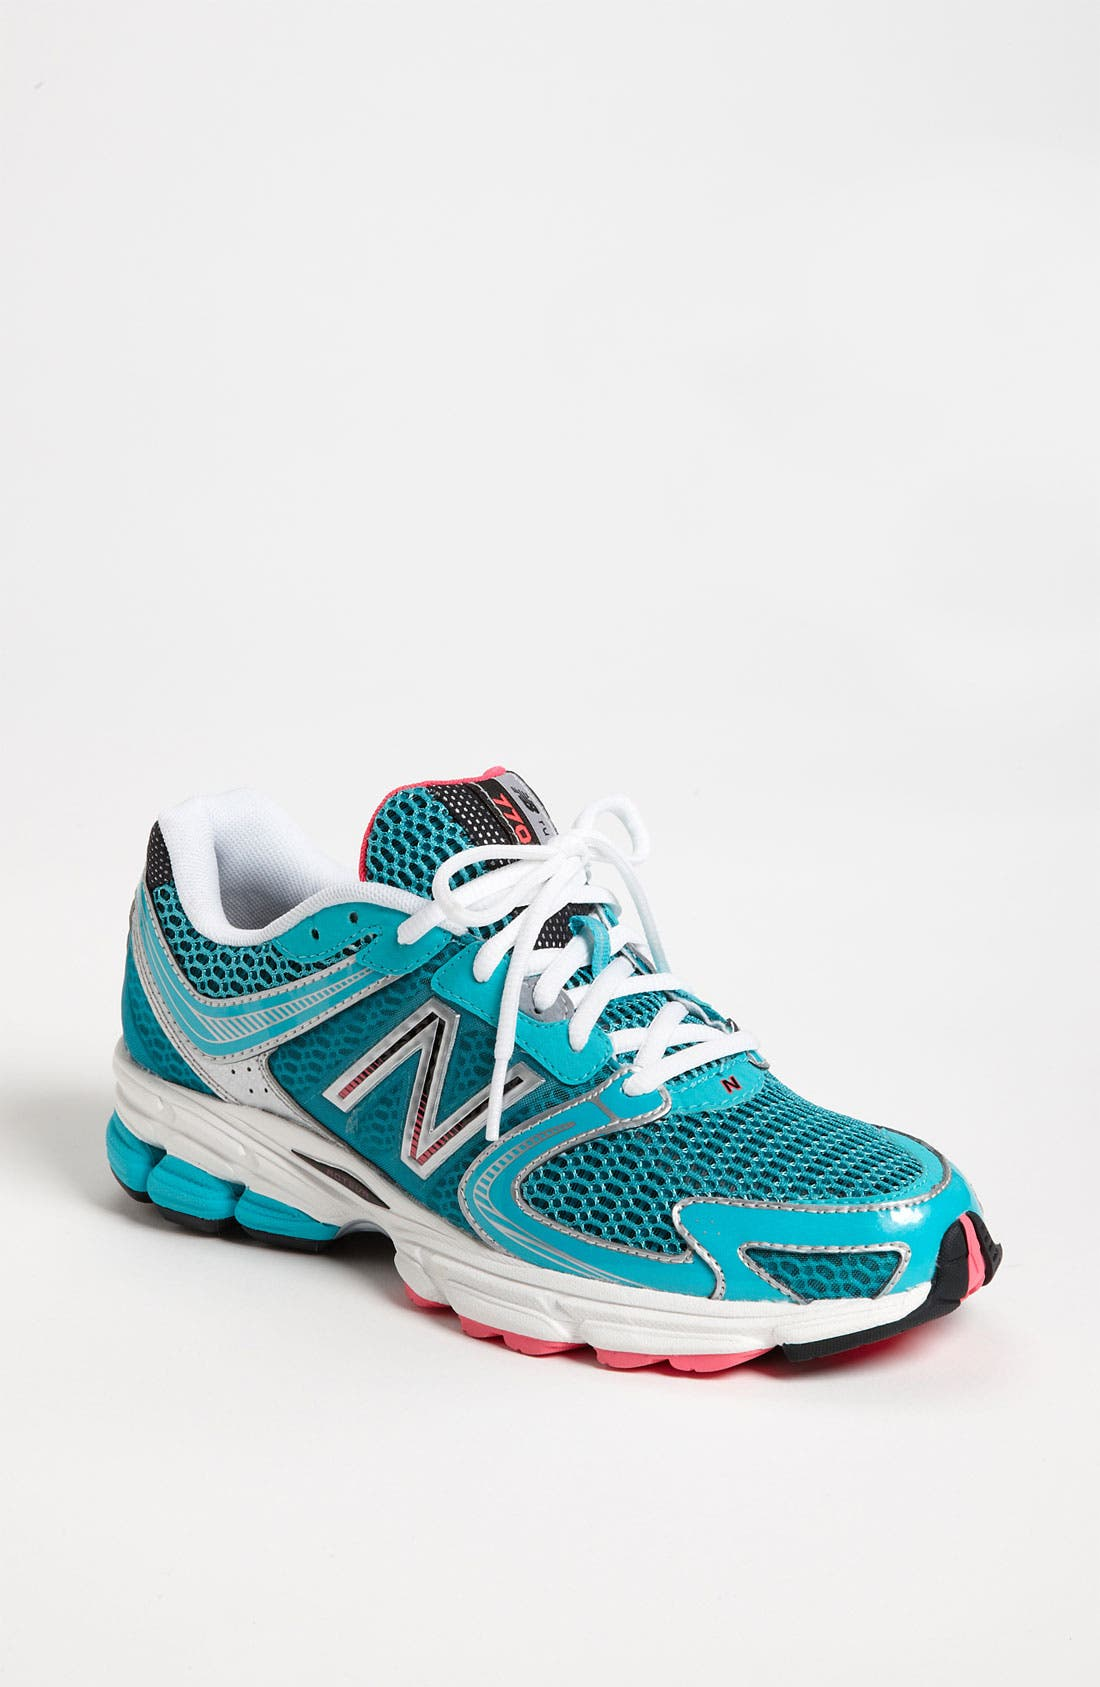 Main Image - New Balance '770' Running Shoe (Women)